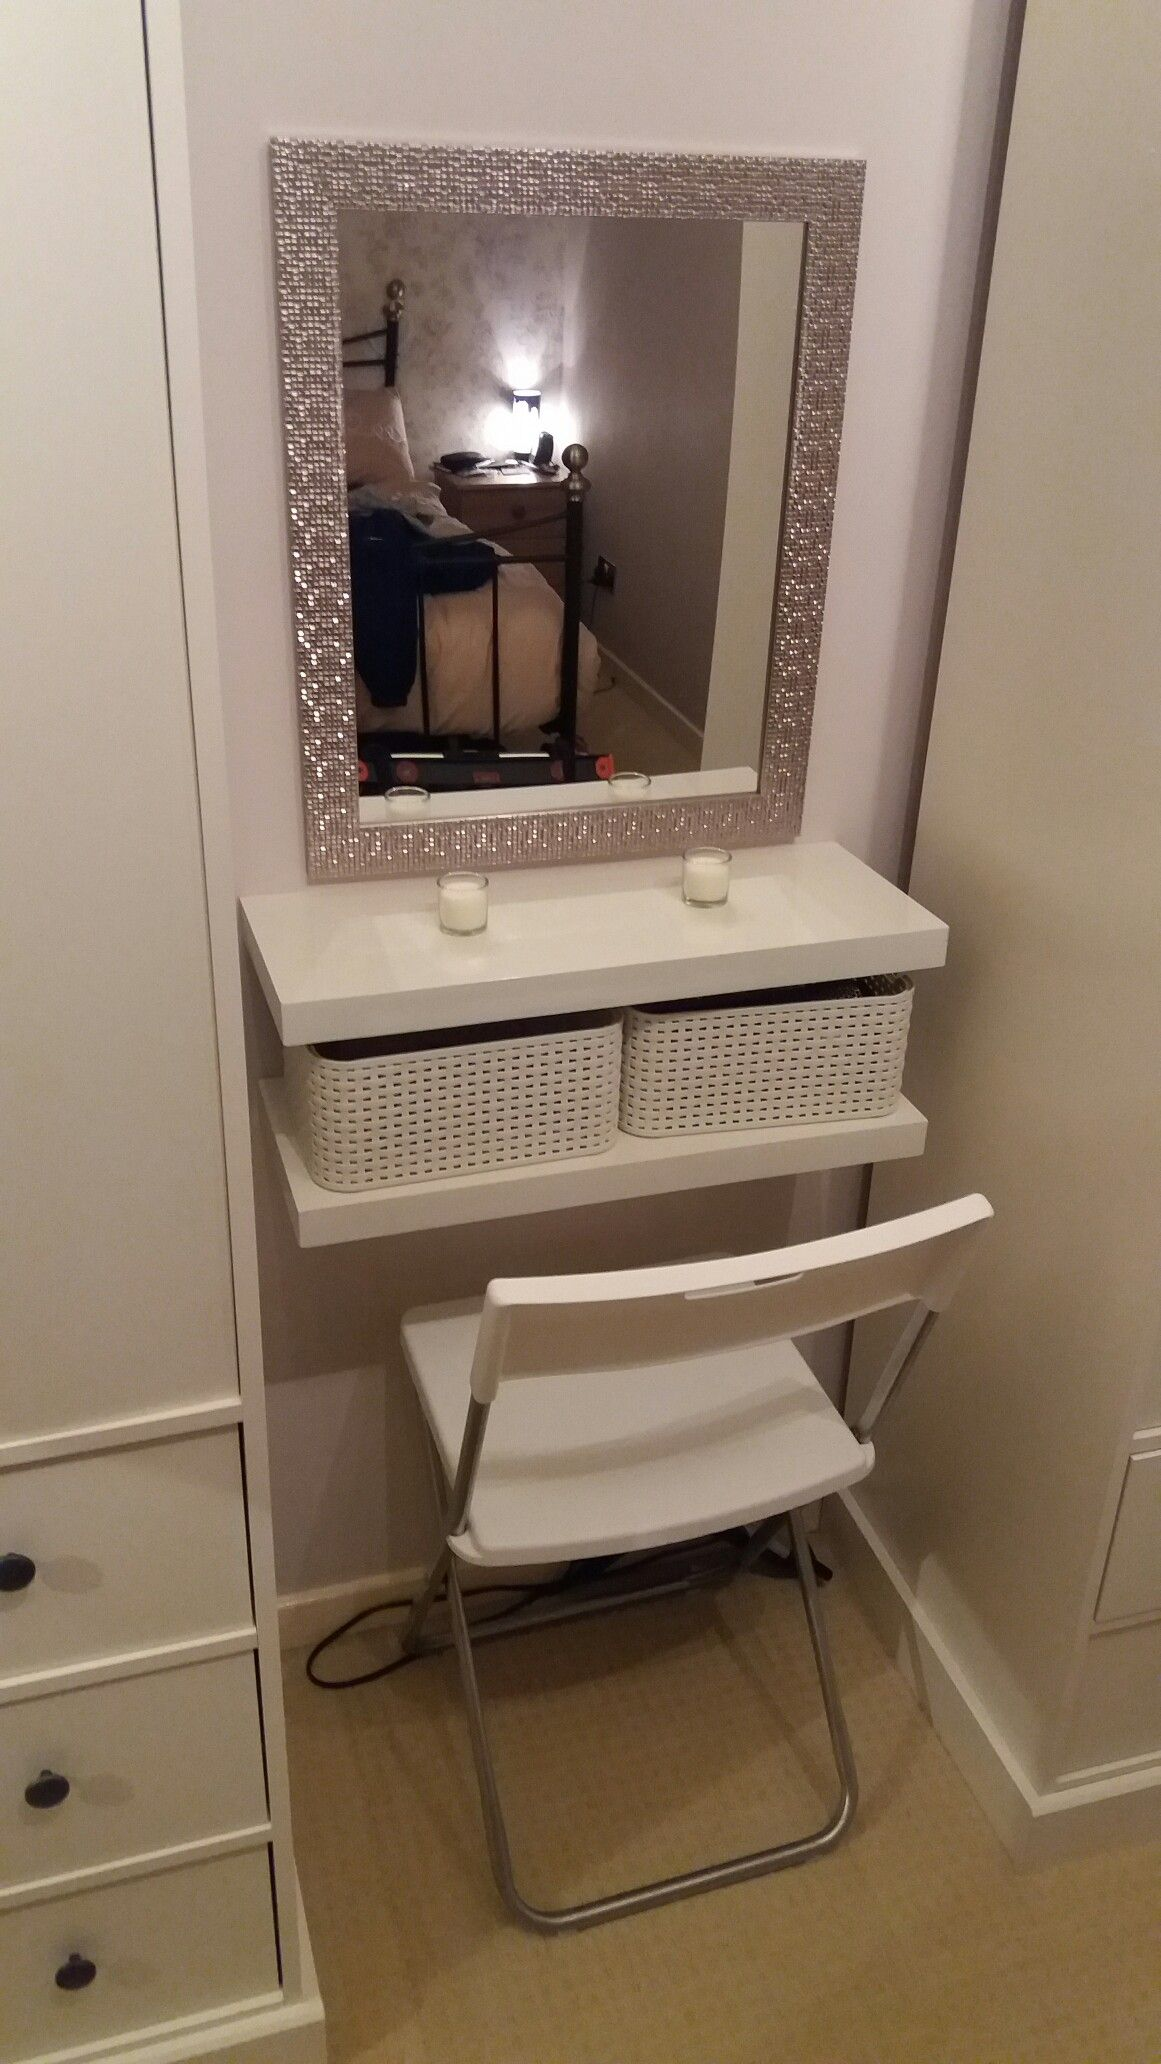 Dressing Diy Diy Dressing Table 2 Floating Shelves Crates Seat And